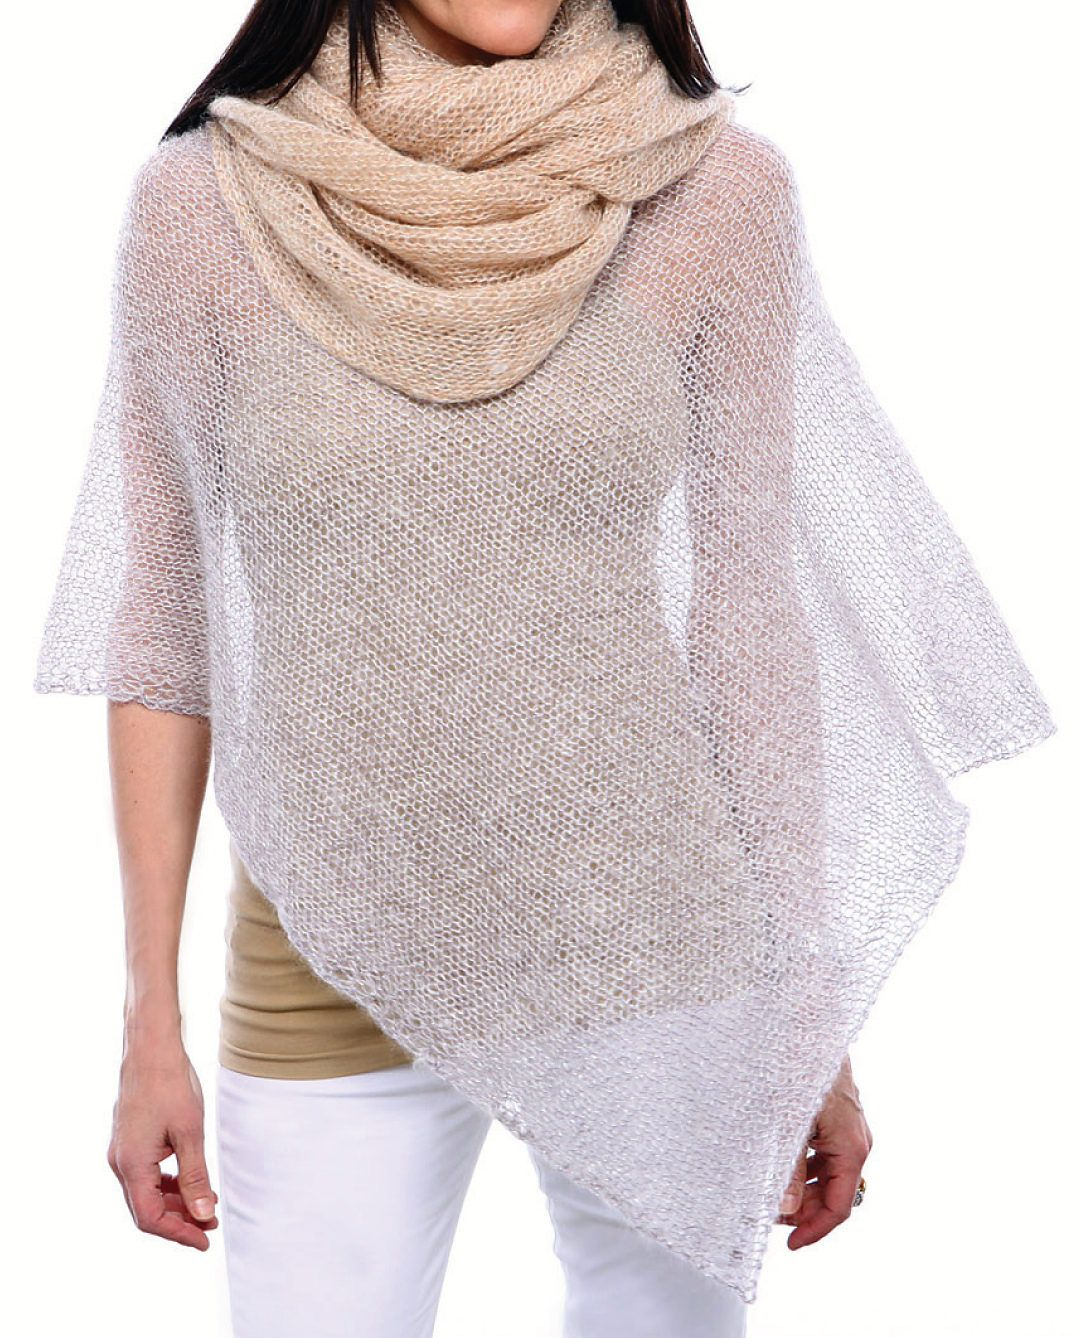 Free Knitting Pattern for Grace and Style Poncho | Knitting ...